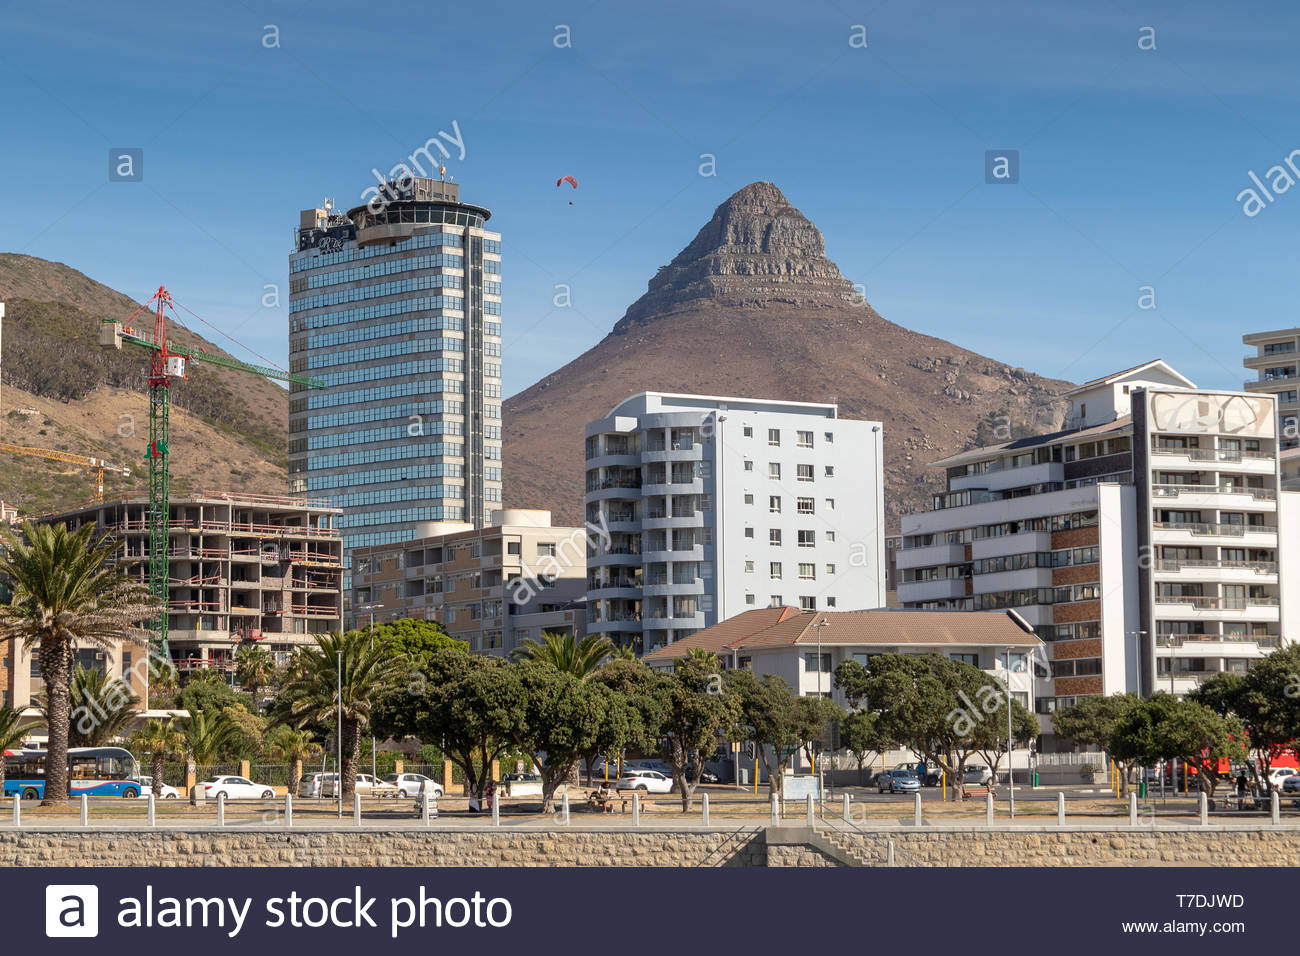 devil's peak view from Sea Point Promenade in Cape Town - Stock Image